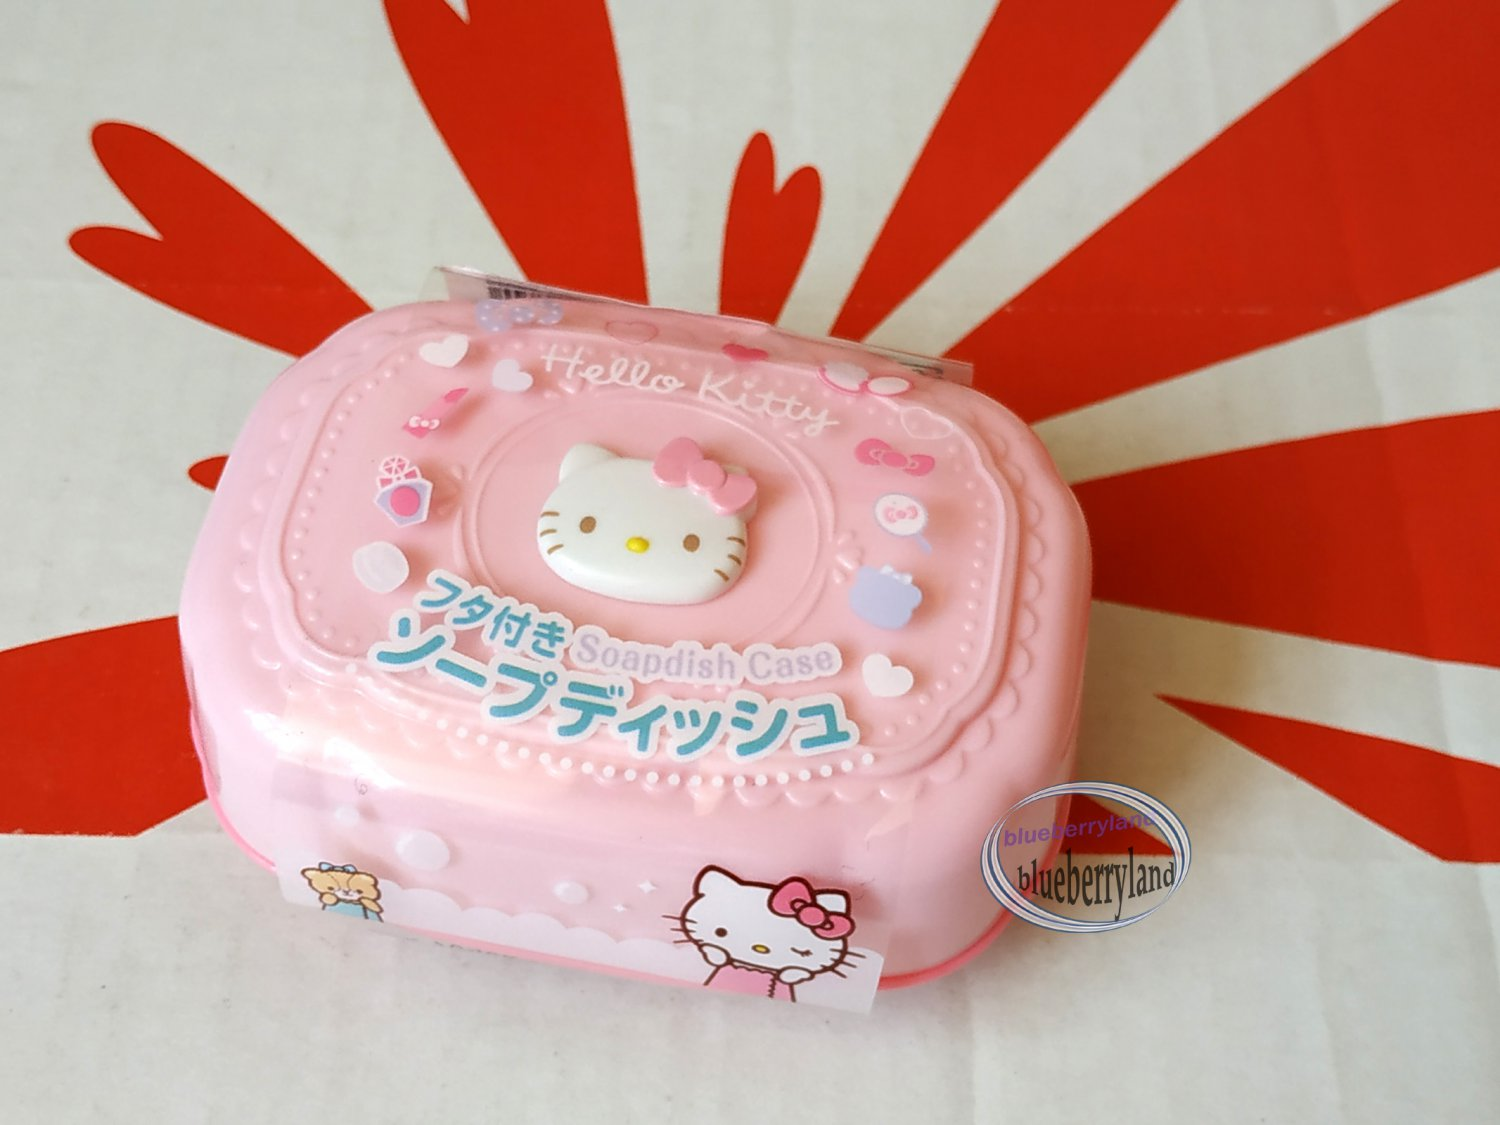 Sanrio Hello Kitty Soapdish Case Soap Dish Holder Pink bathroom accessories